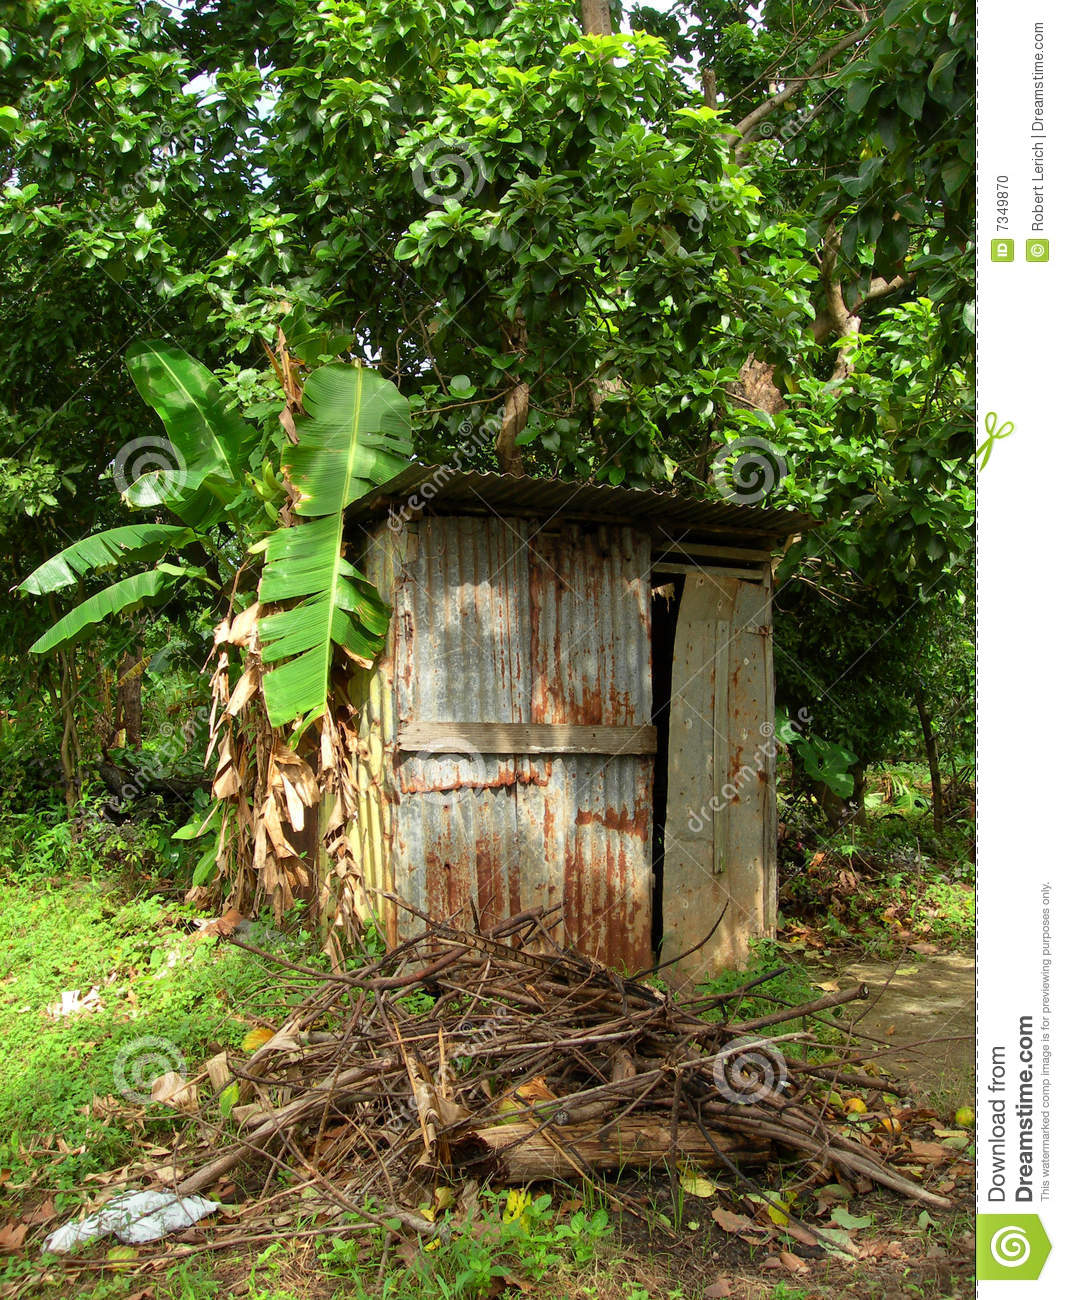 łazienki domowy Nicaragua outhouse toalety cynk